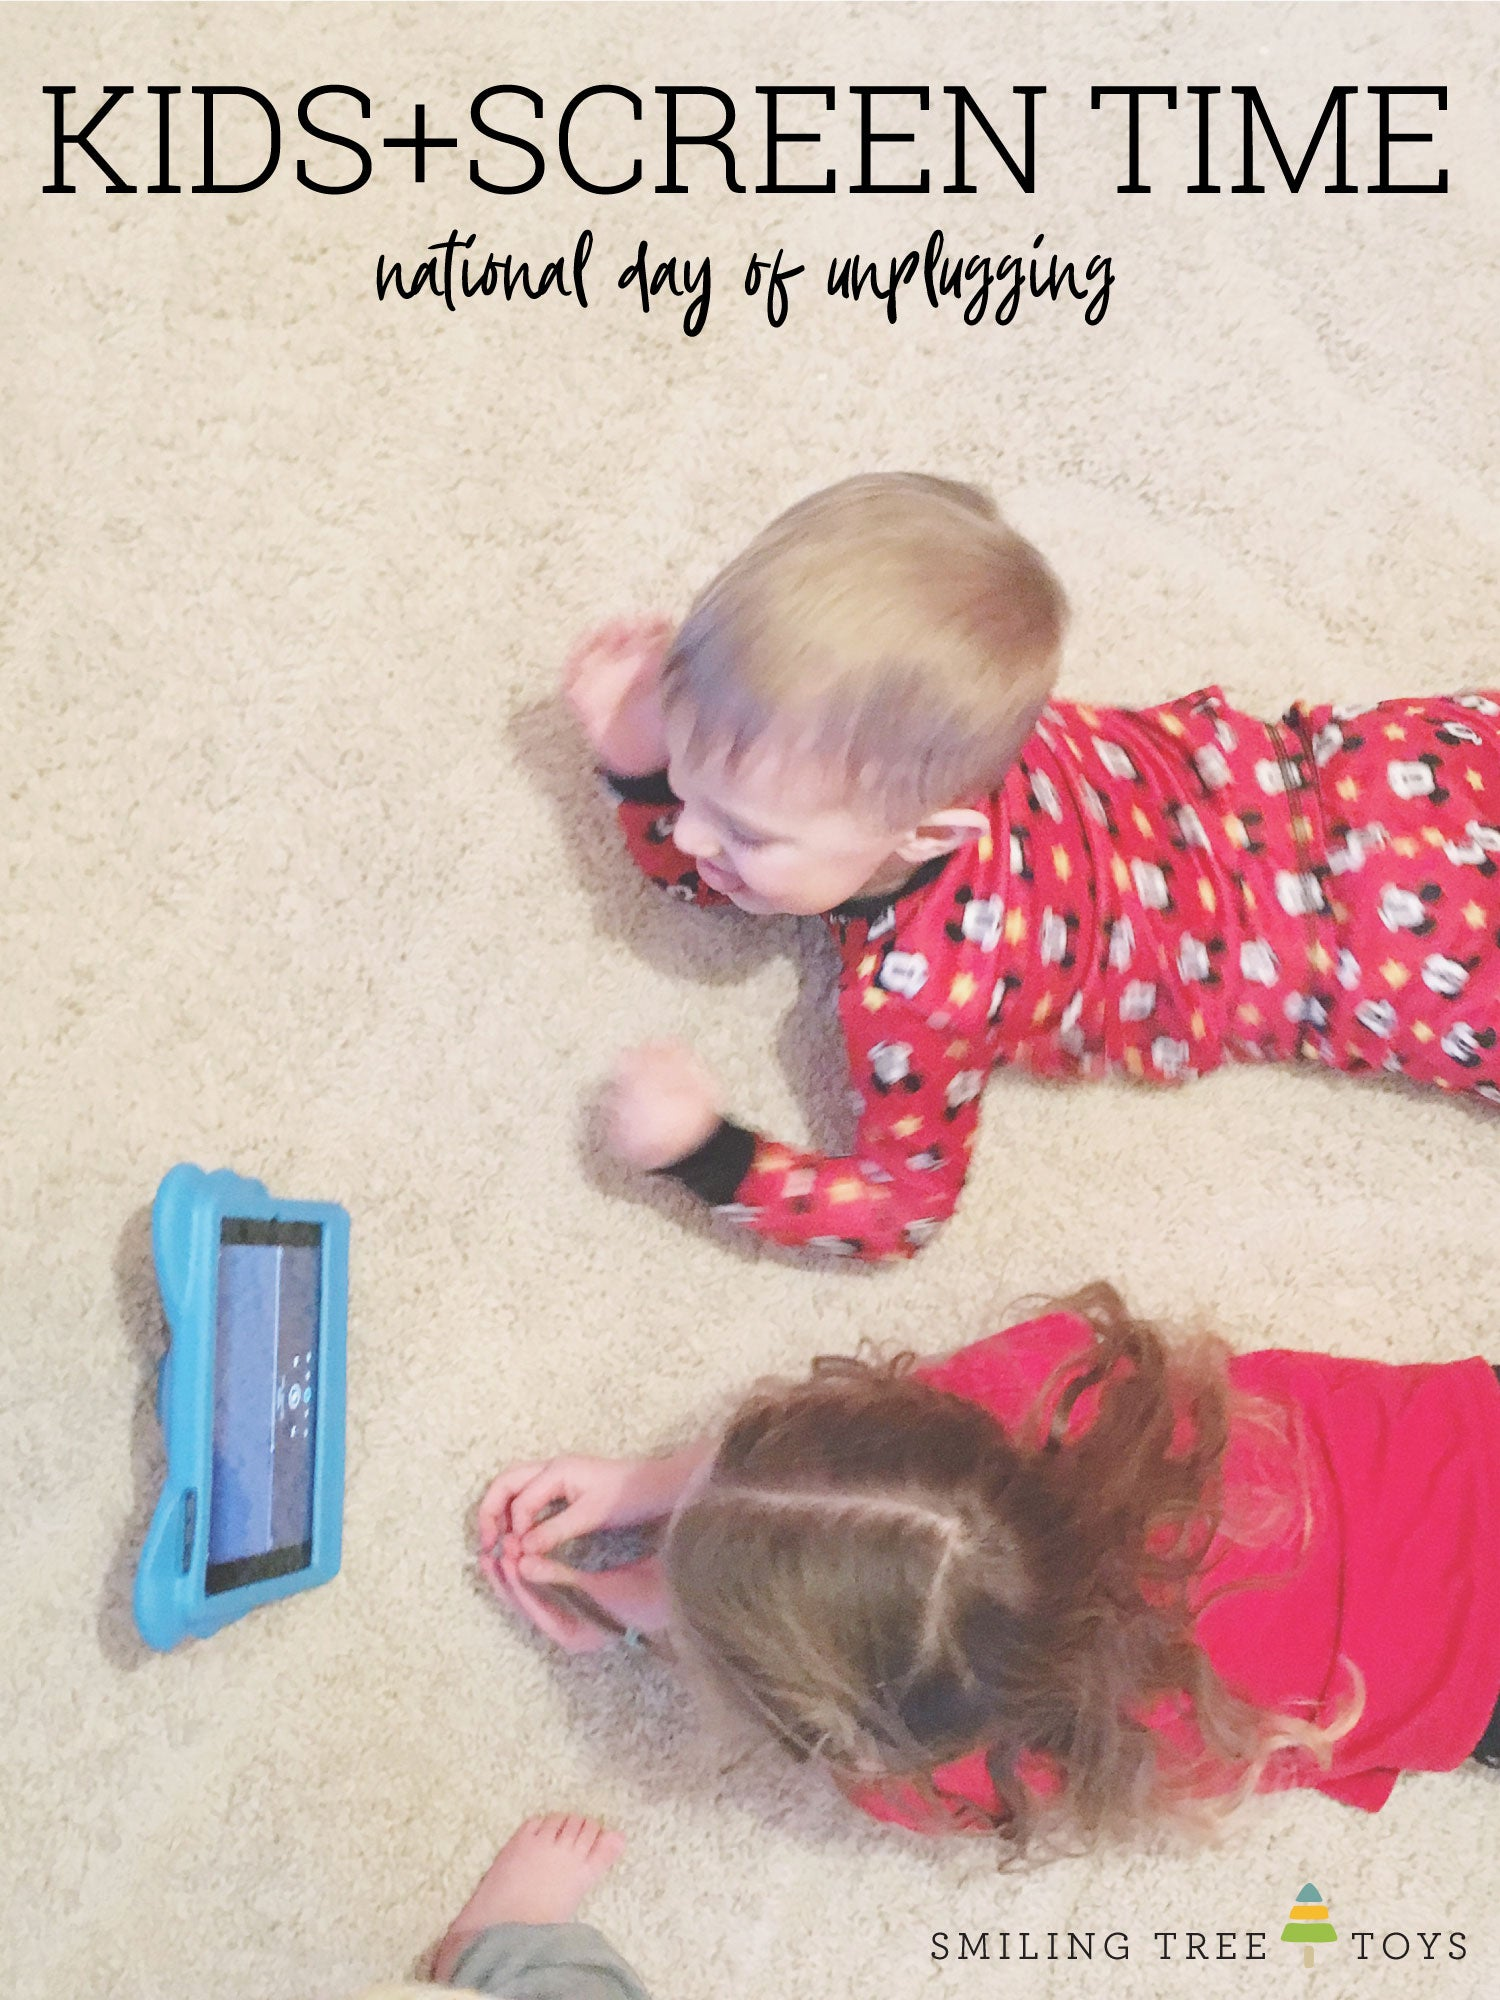 How to Limit Screen Time for Kids and Adults on This National Day of Unplugging